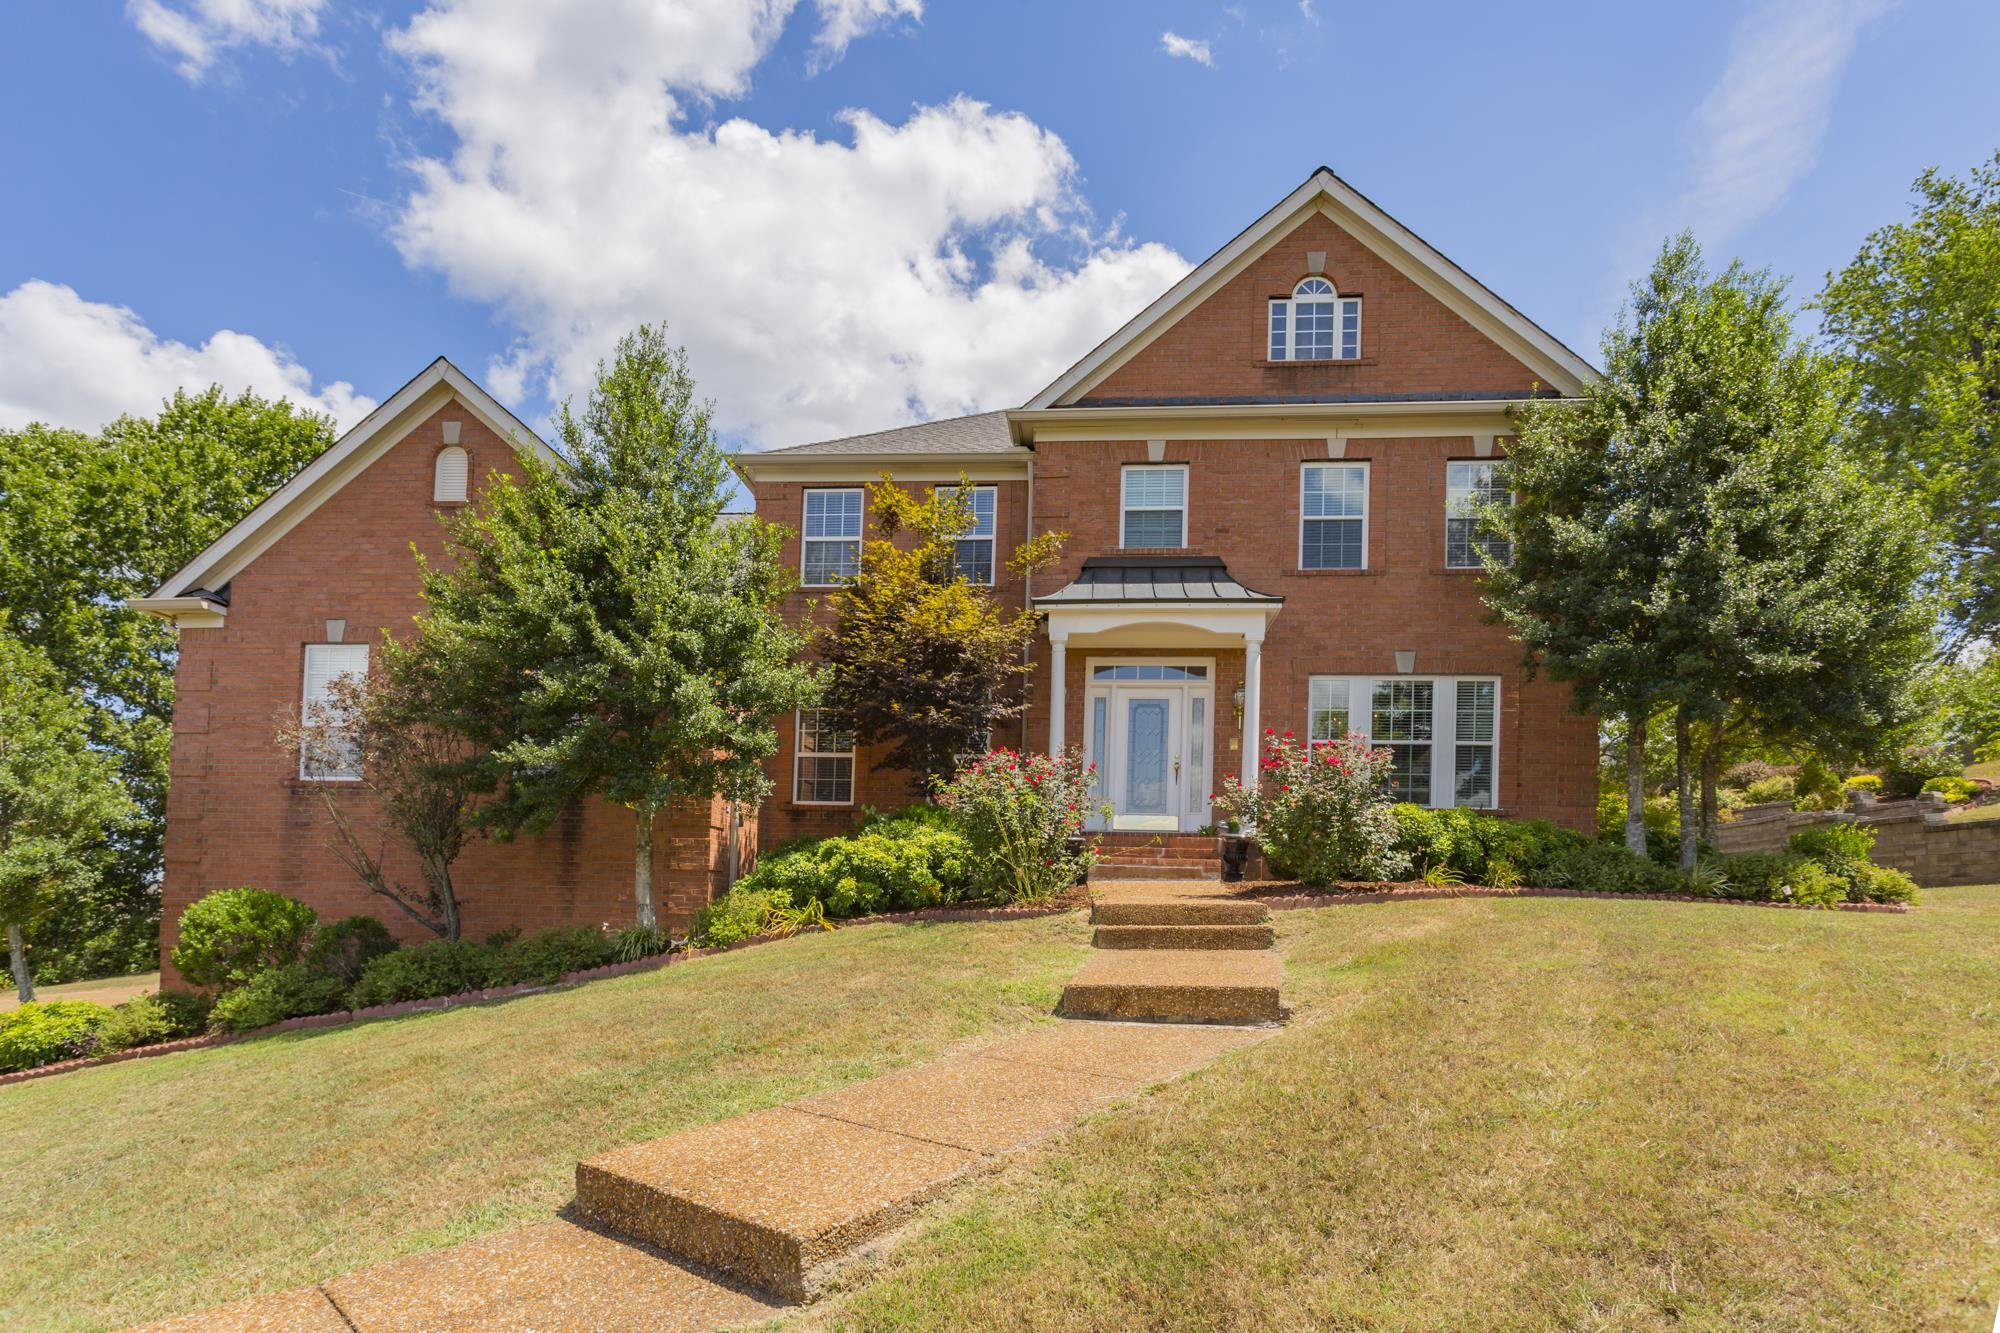 8116 Chaseview Ct, Bellevue, Tennessee